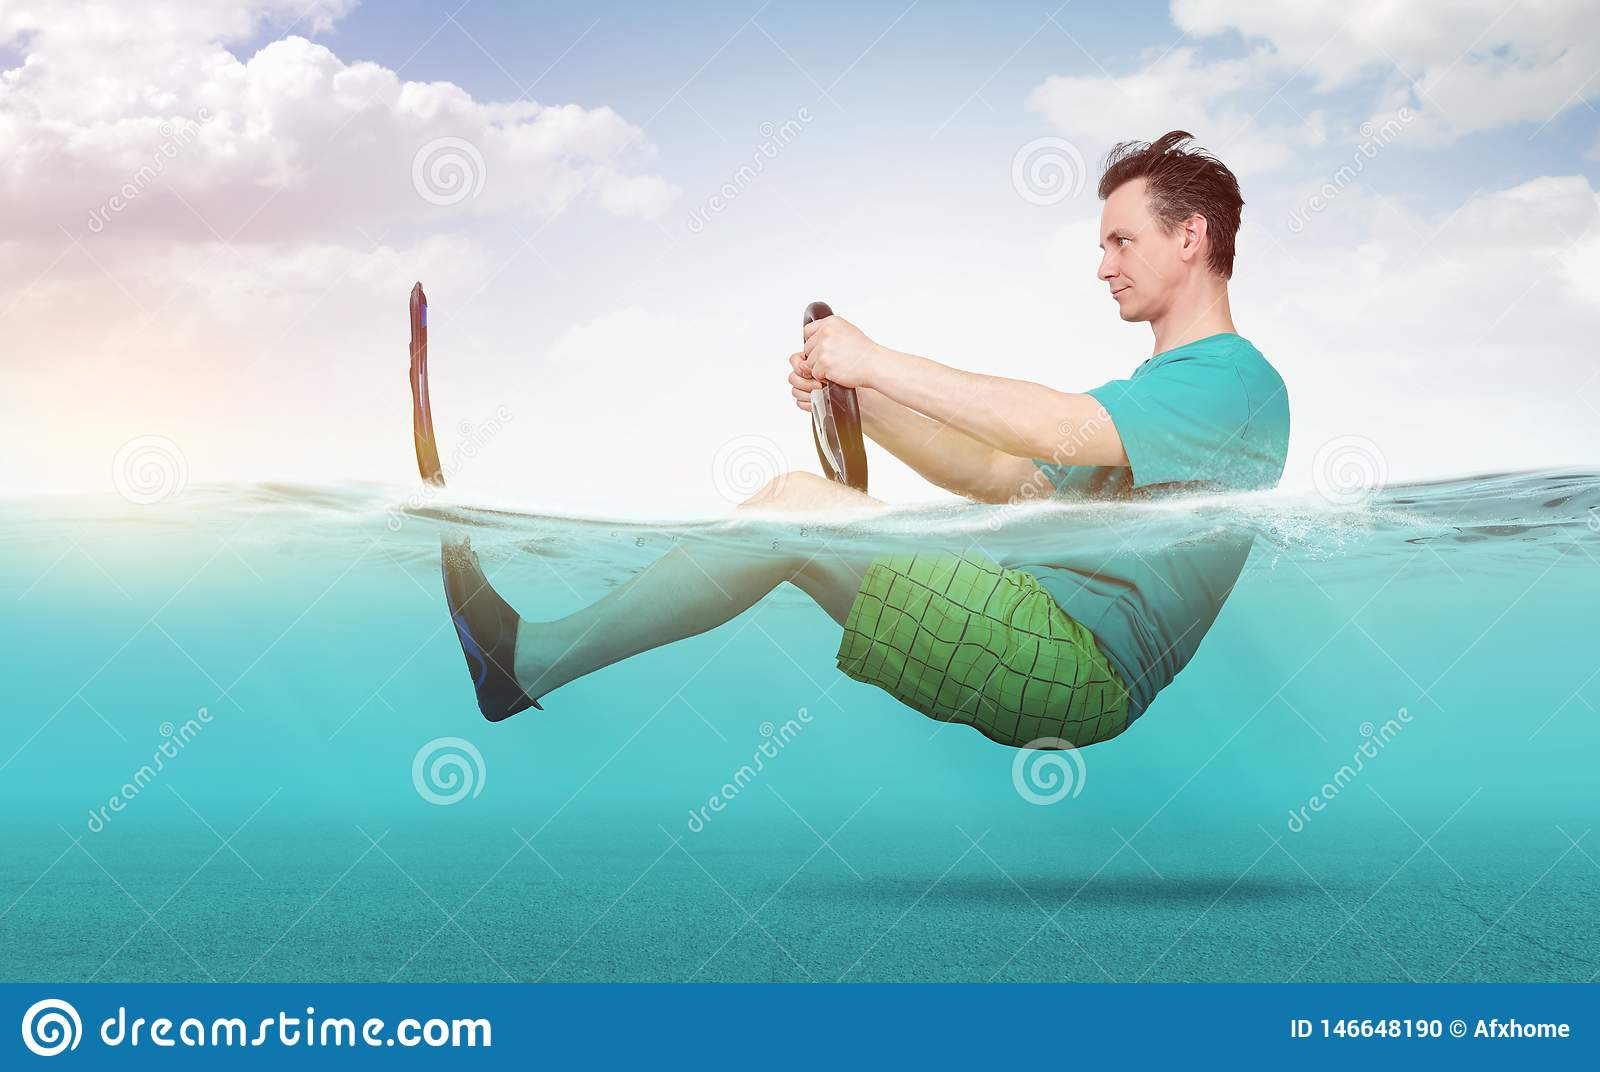 Funny man in shorts, T-shirt and flippers rides on the sea with a car steering wheel. Concept of going on vacation